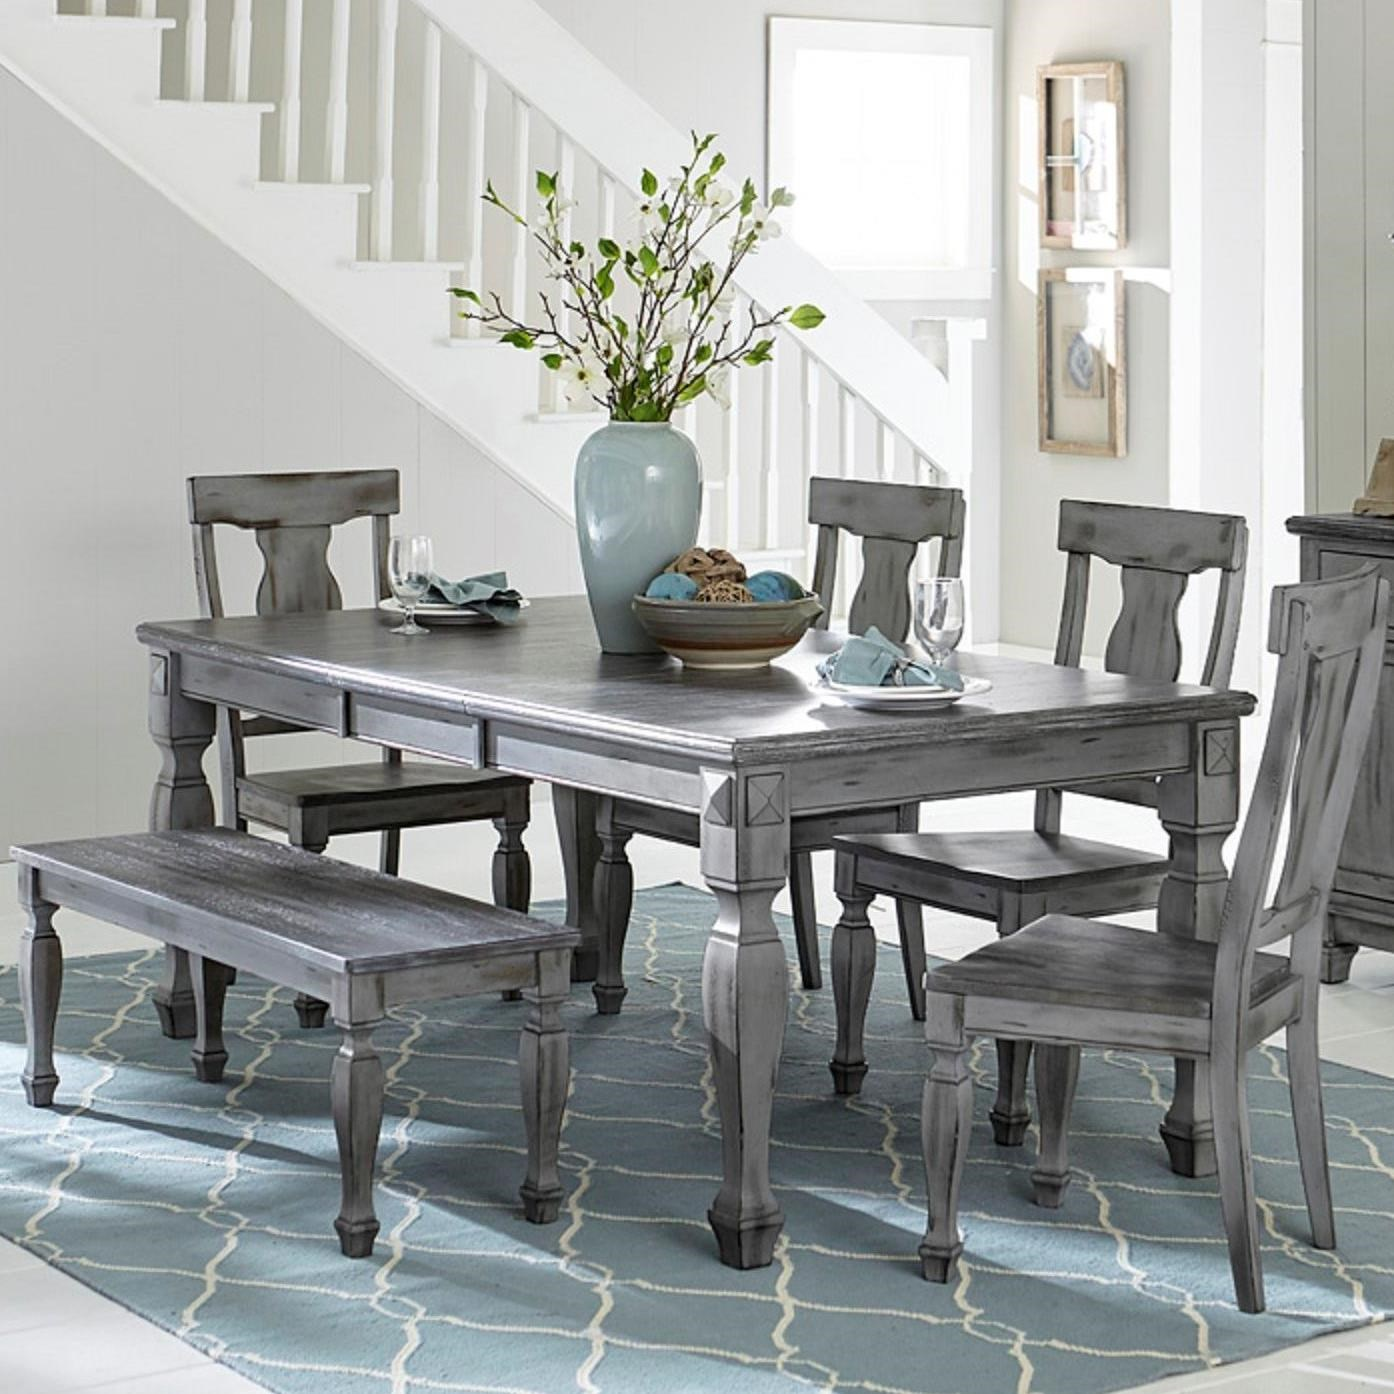 Fulbright Table & Chair Set with Bench by Homelegance at Beck's Furniture